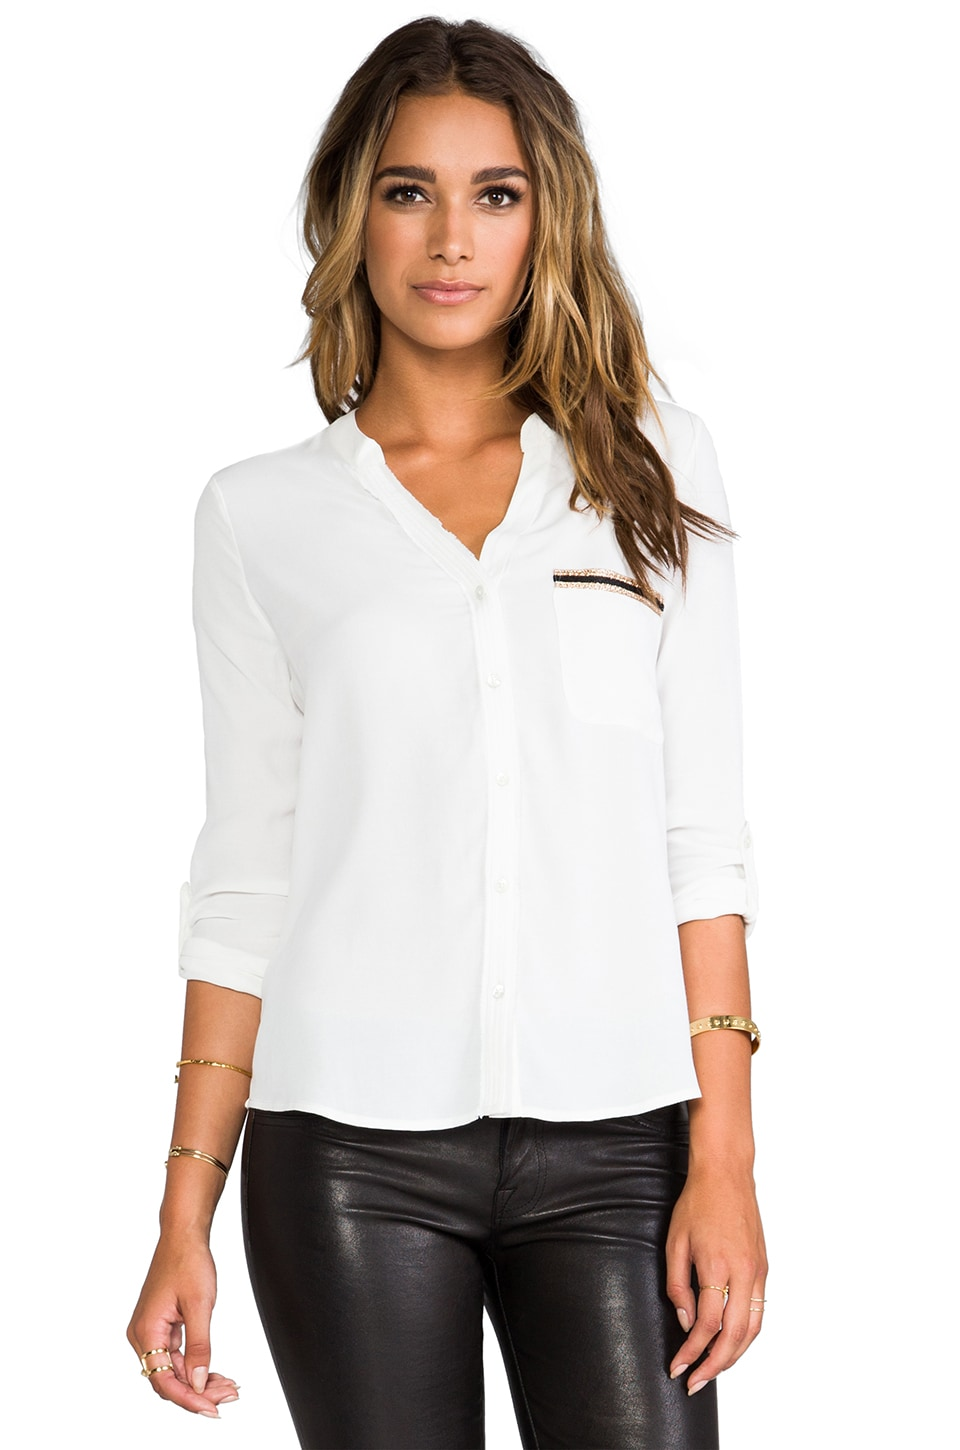 Soft Joie Anabella C Blouse in Porcelain